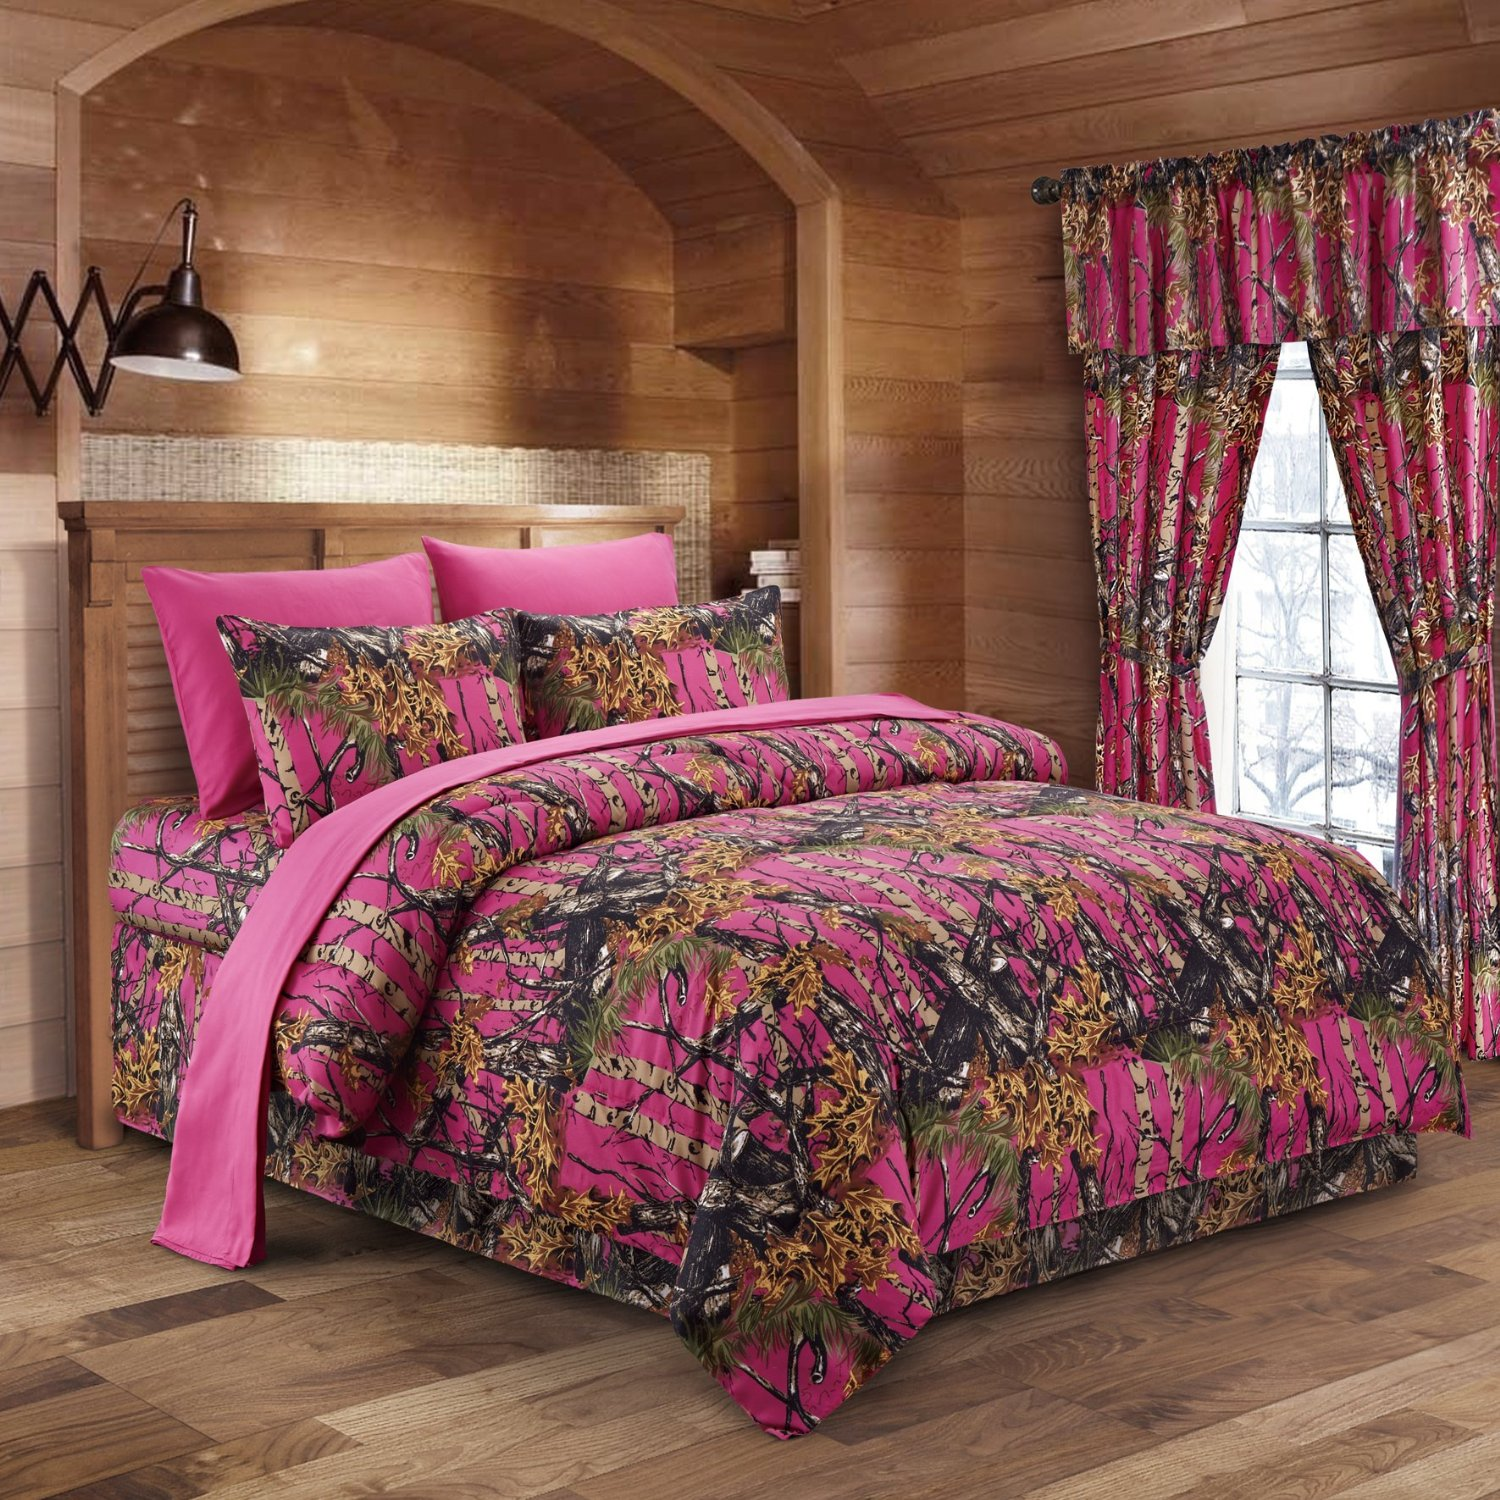 The Woods Hot Pink Camouflage Full 8pc Premium Luxury Comforter, Sheet, Pillowcases, and Bed Skirt Set by Regal Comfort Camo Bedding Set For Hunters Cabin or Rustic Lodge Teens Boys and Girls